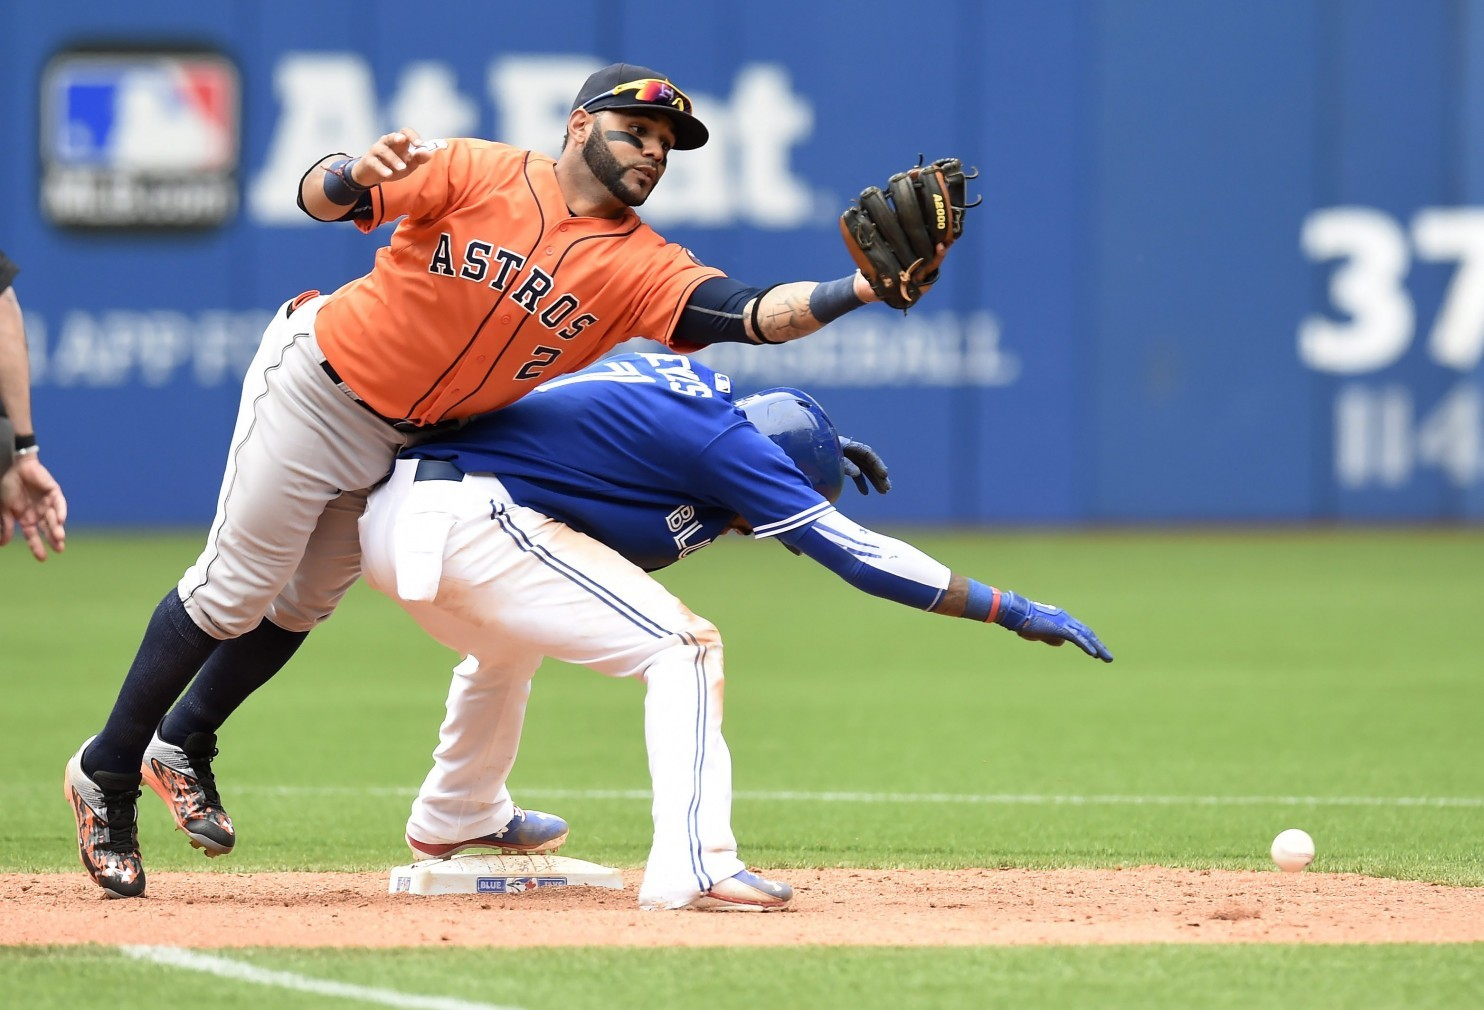 Jose Bautista singles on a pop up because of collision at 2nd base